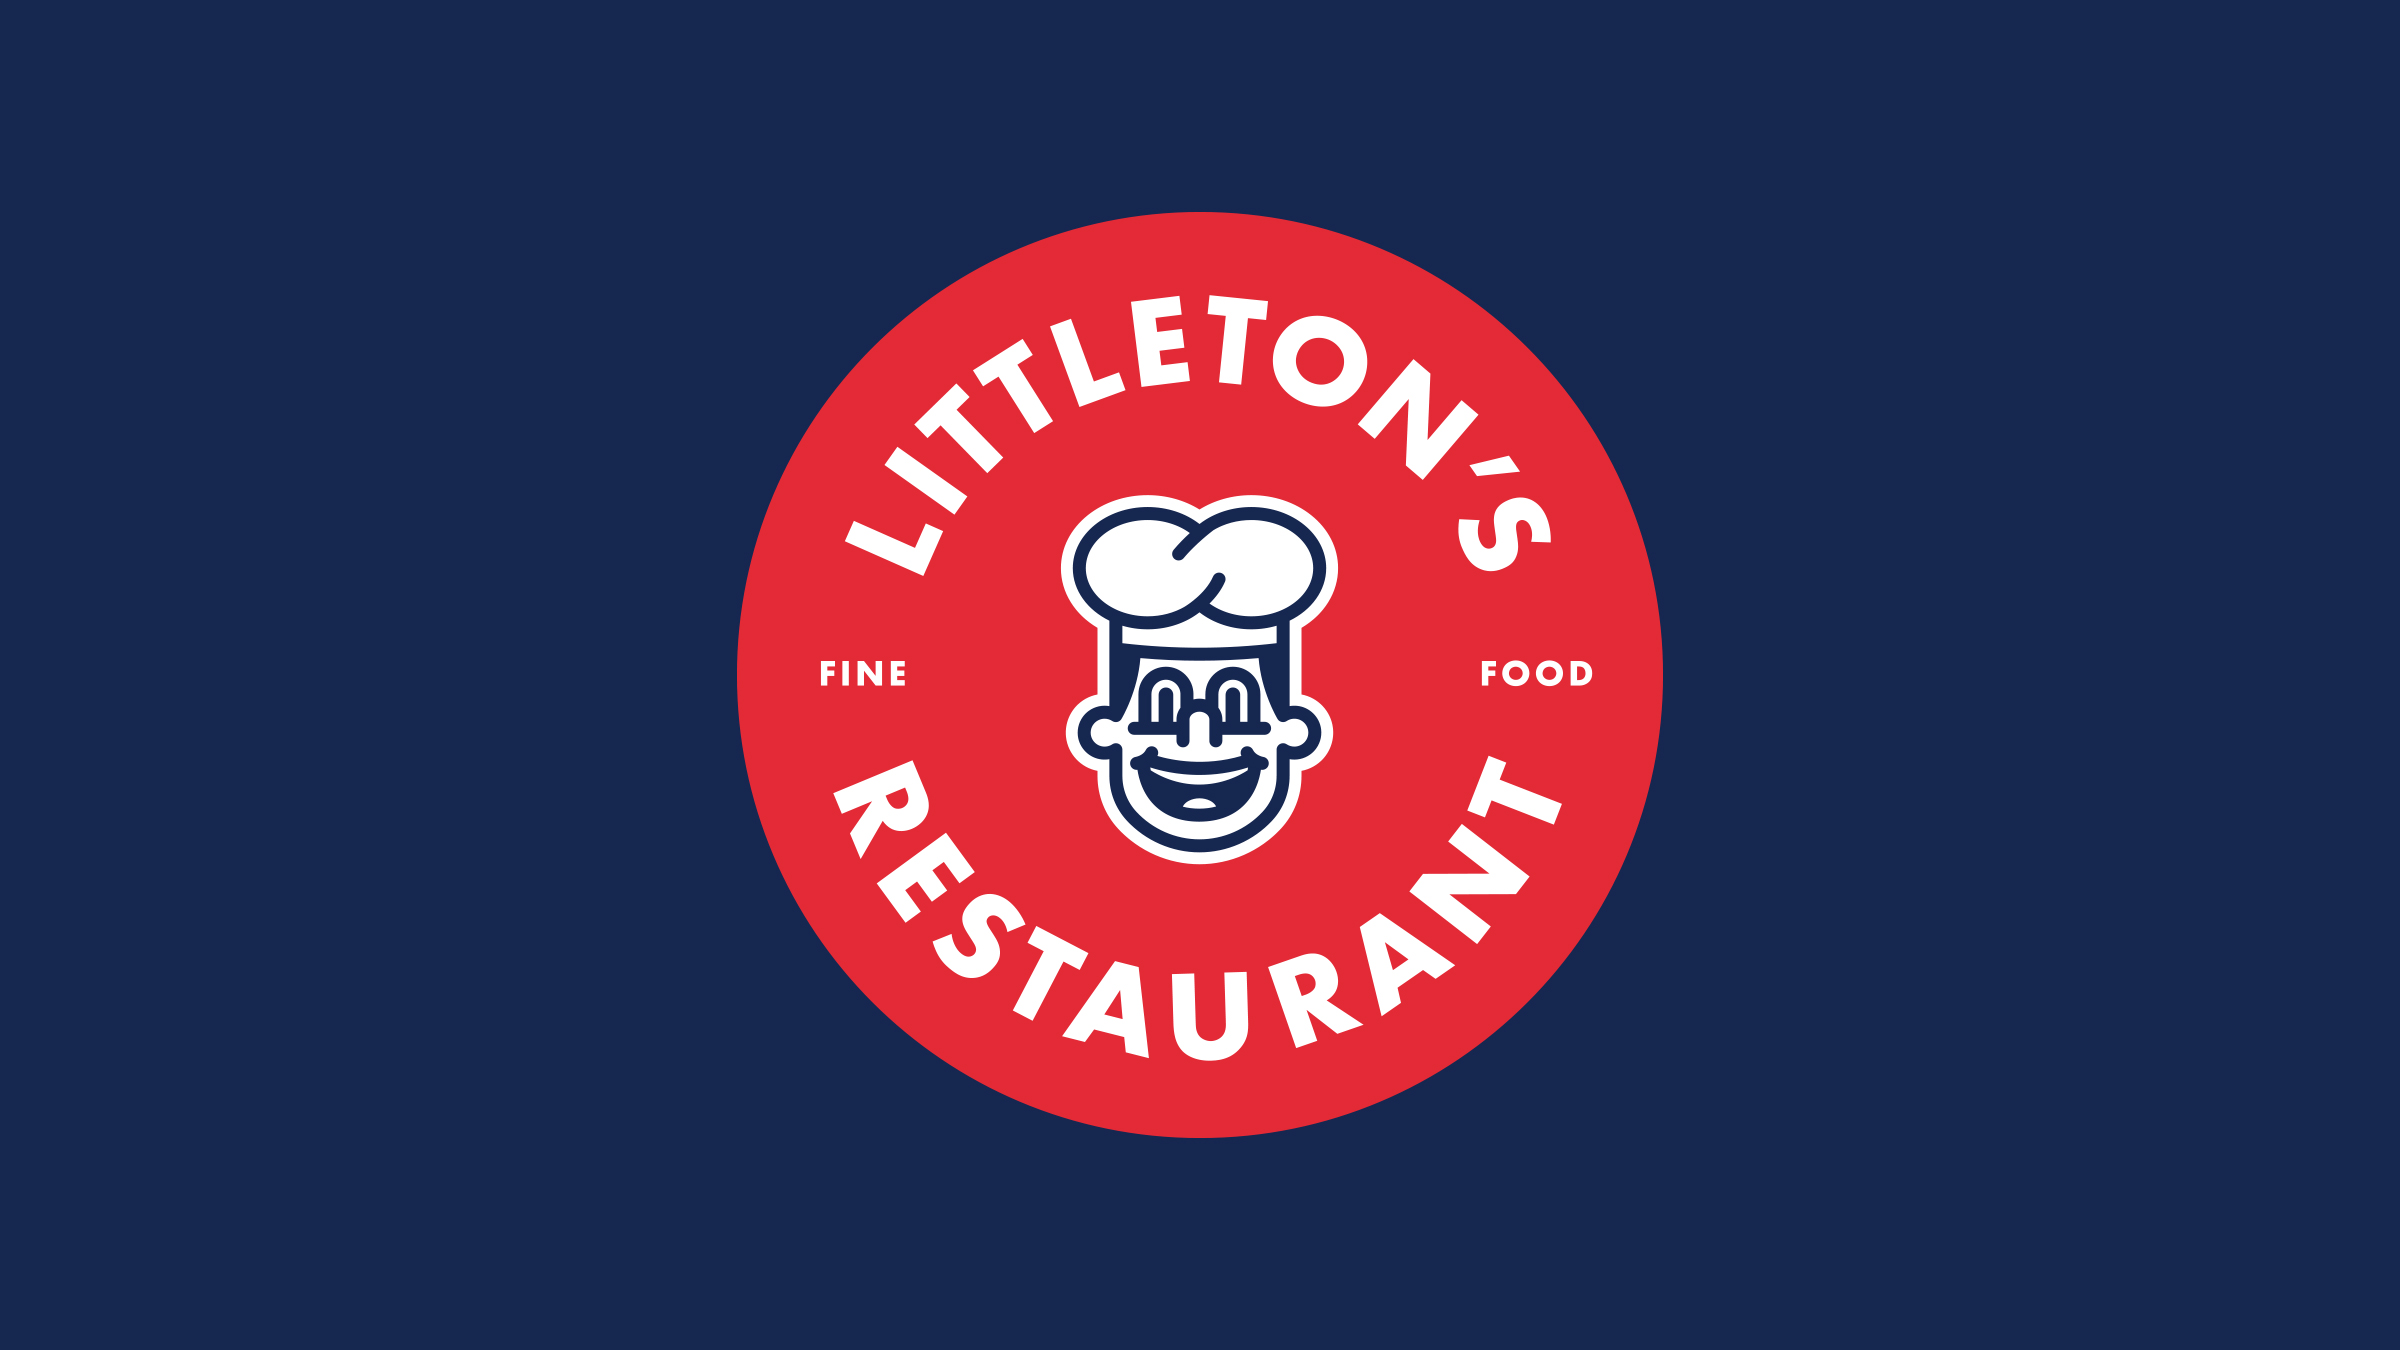 Littleton's Restaurant brand logo red and white on blue